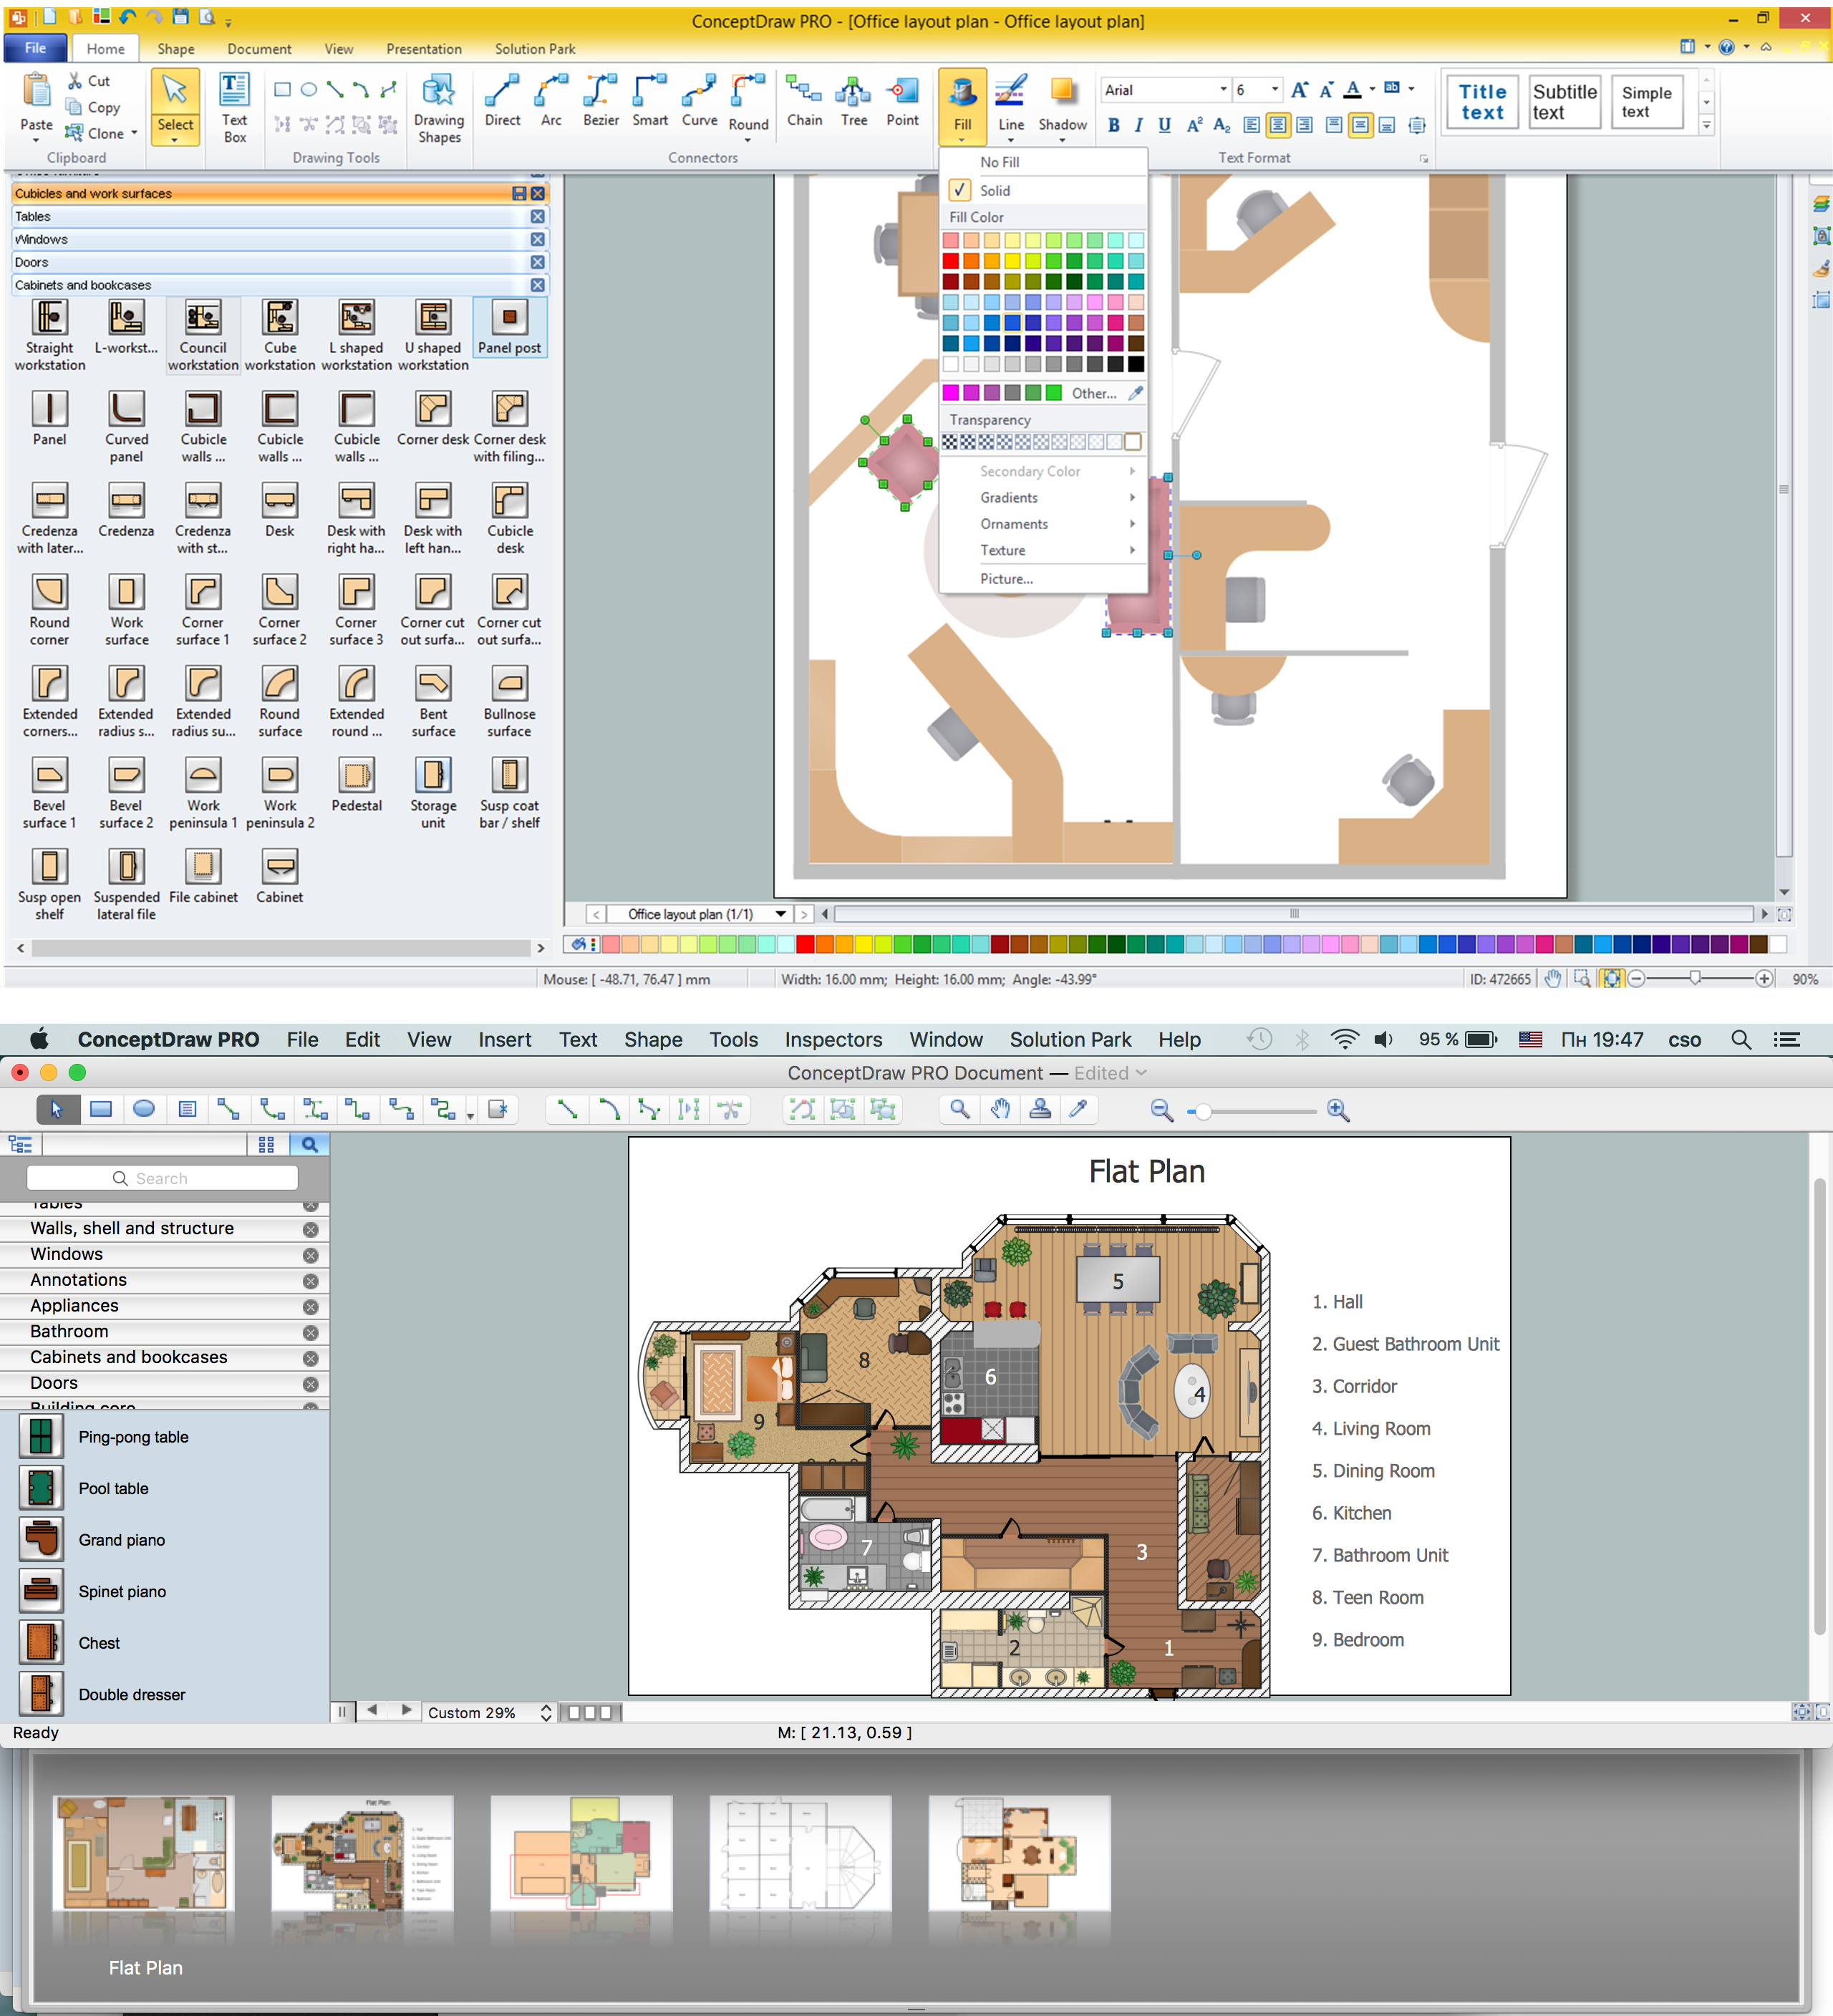 office floor plan maker. building plan software office floor maker b